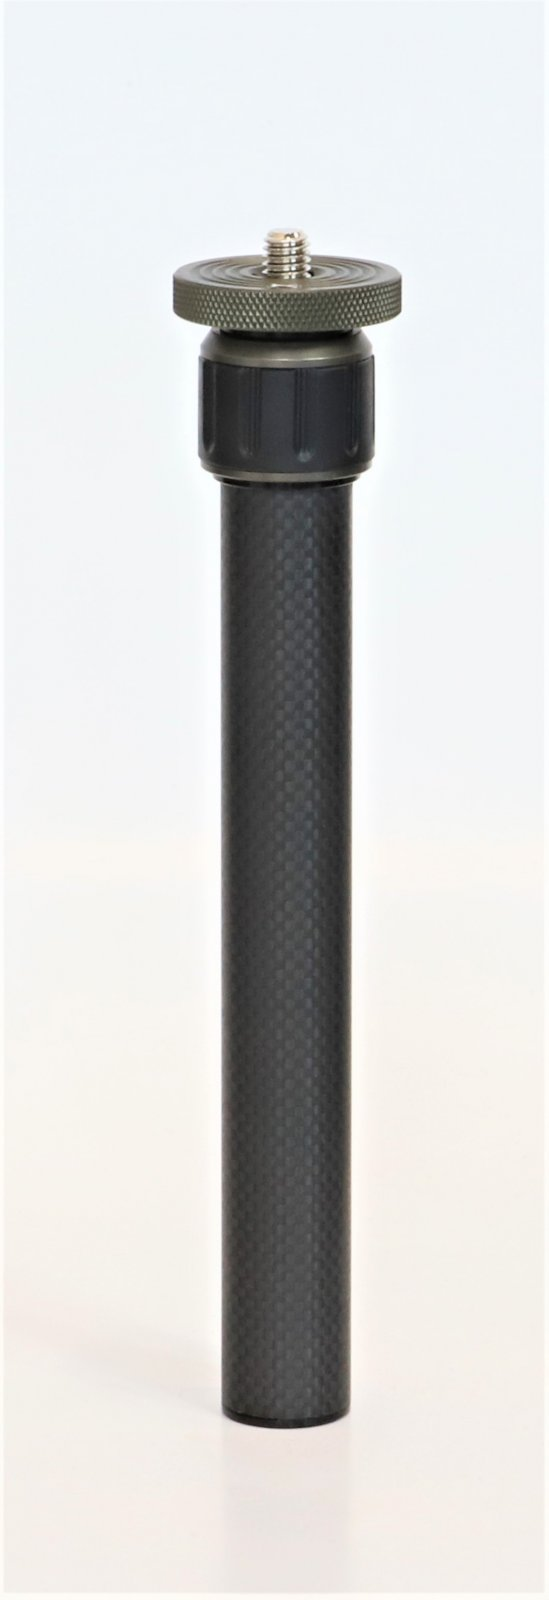 Telescoping Riser Assy - 9-15 x 26mm Tube, Carbon Fiber